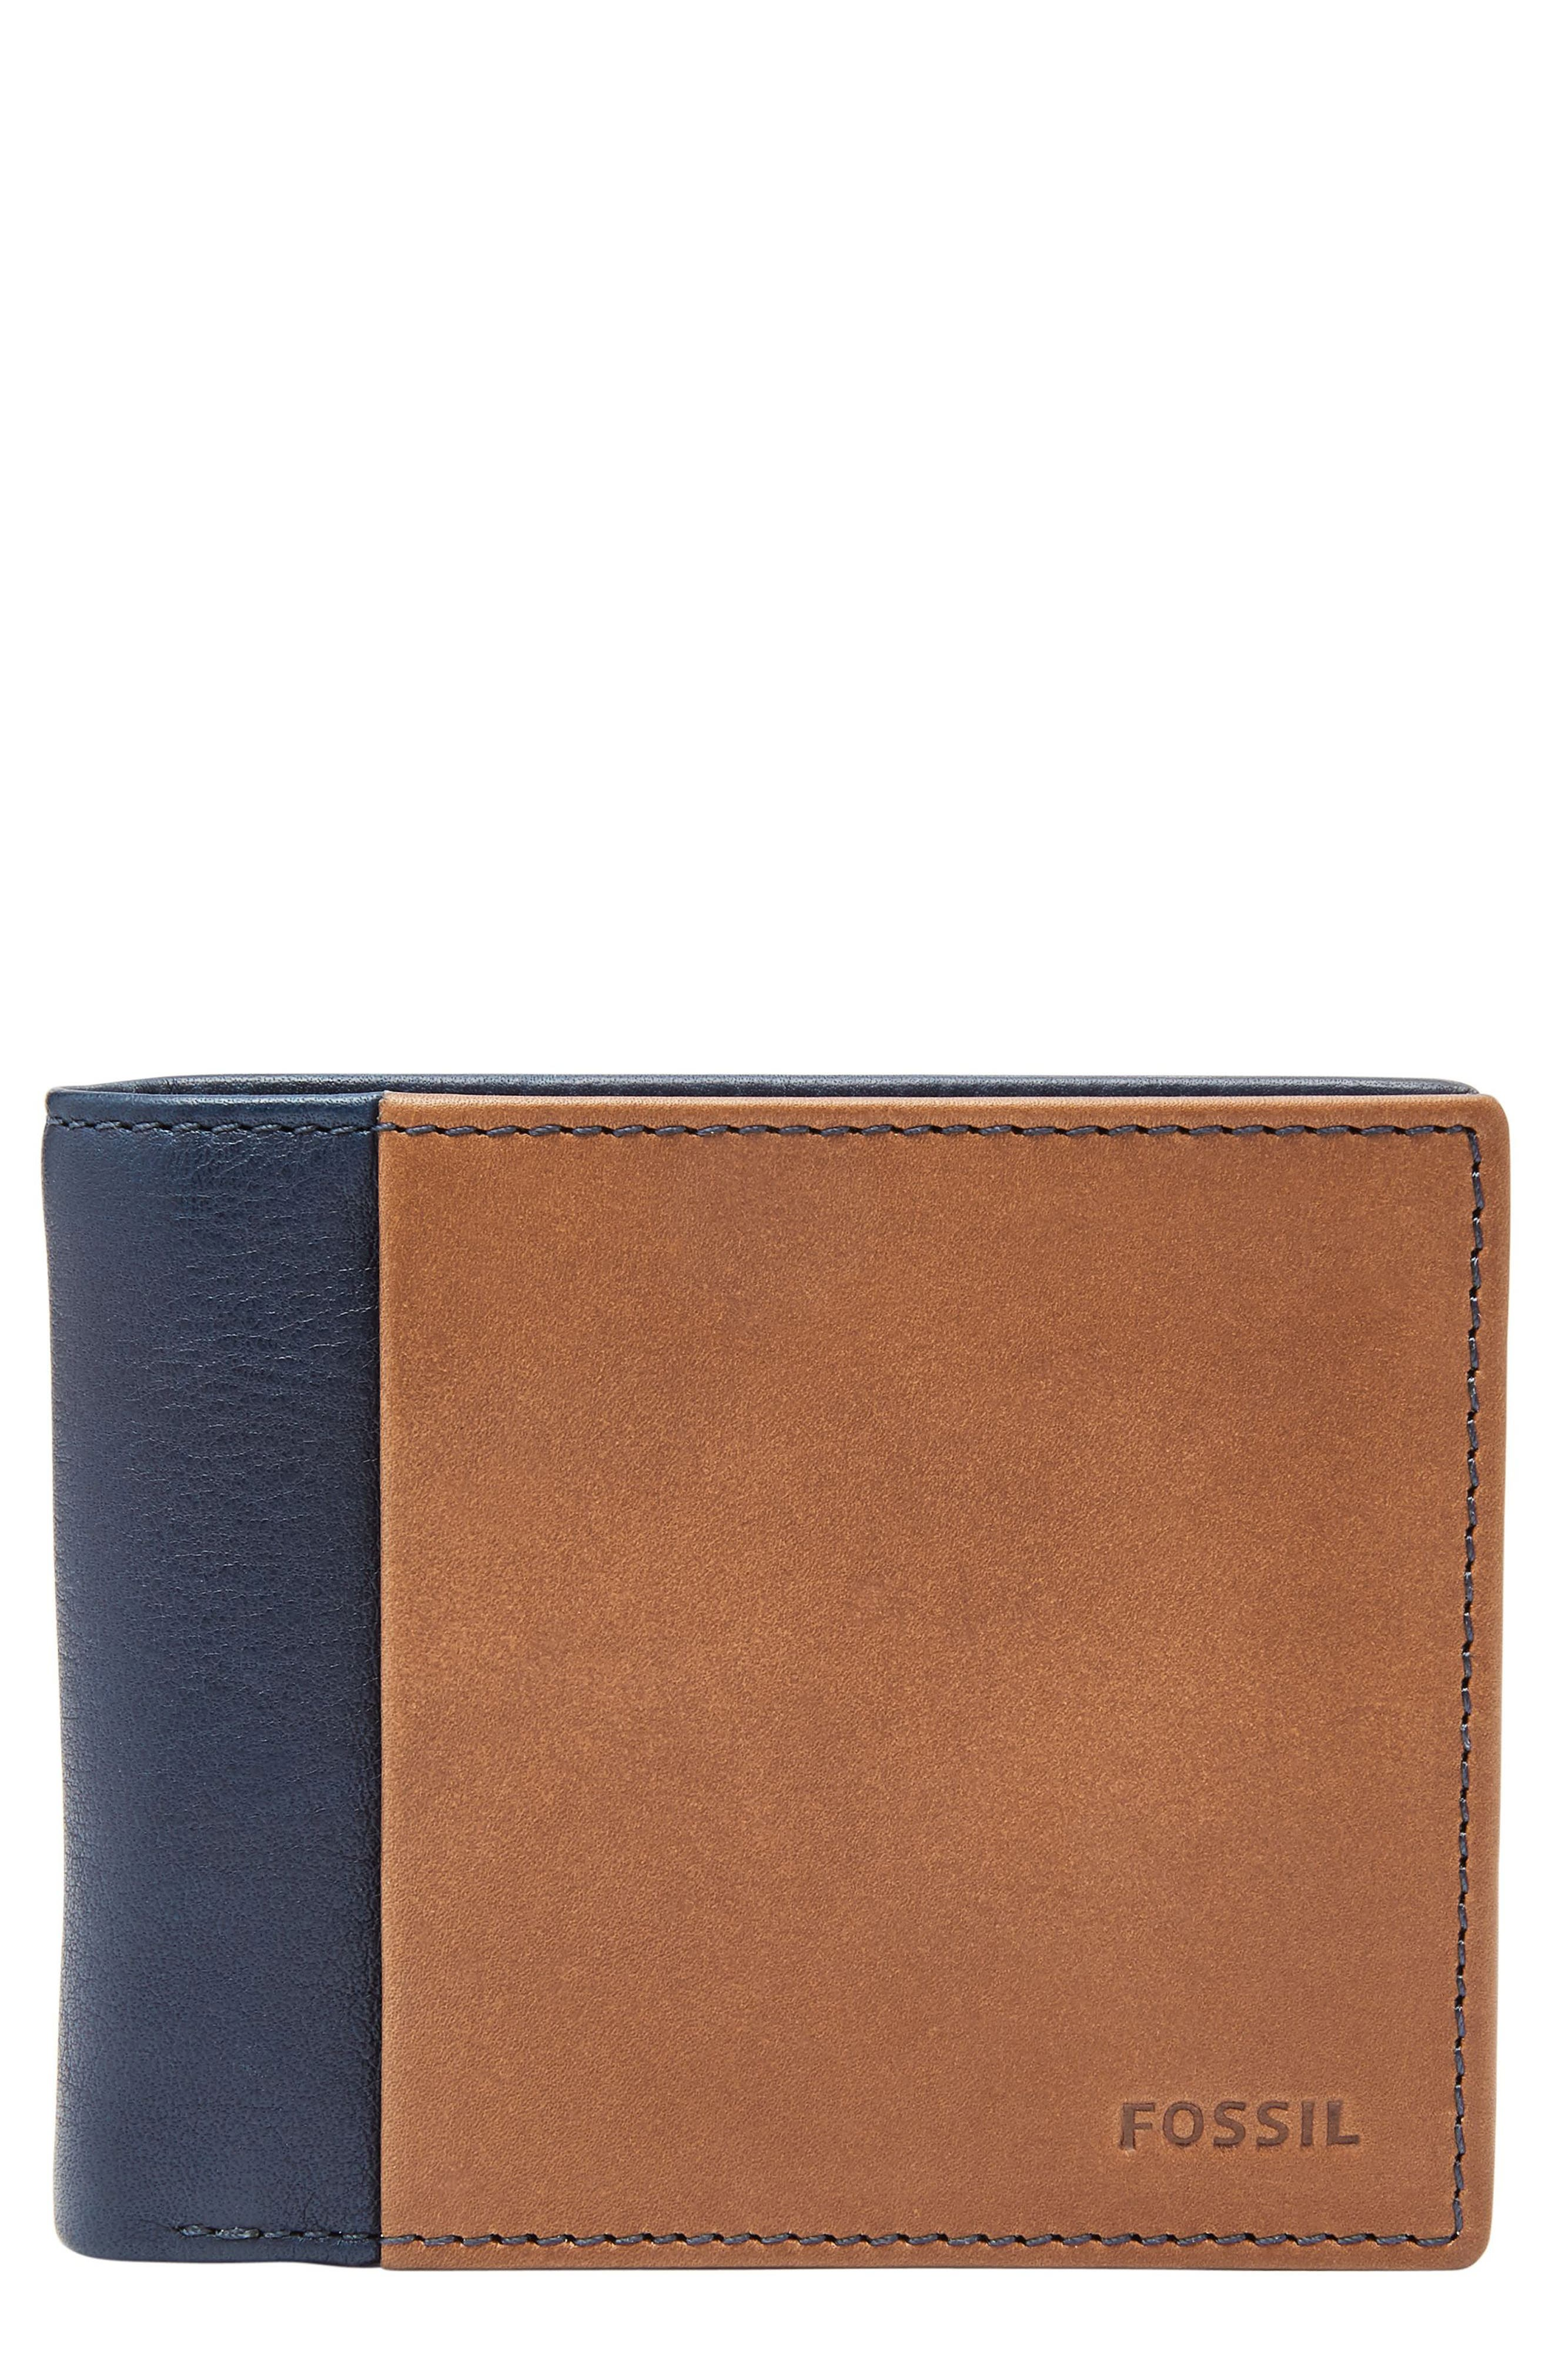 FOSSIL Ward Leather Wallet, Main, color, NAVY